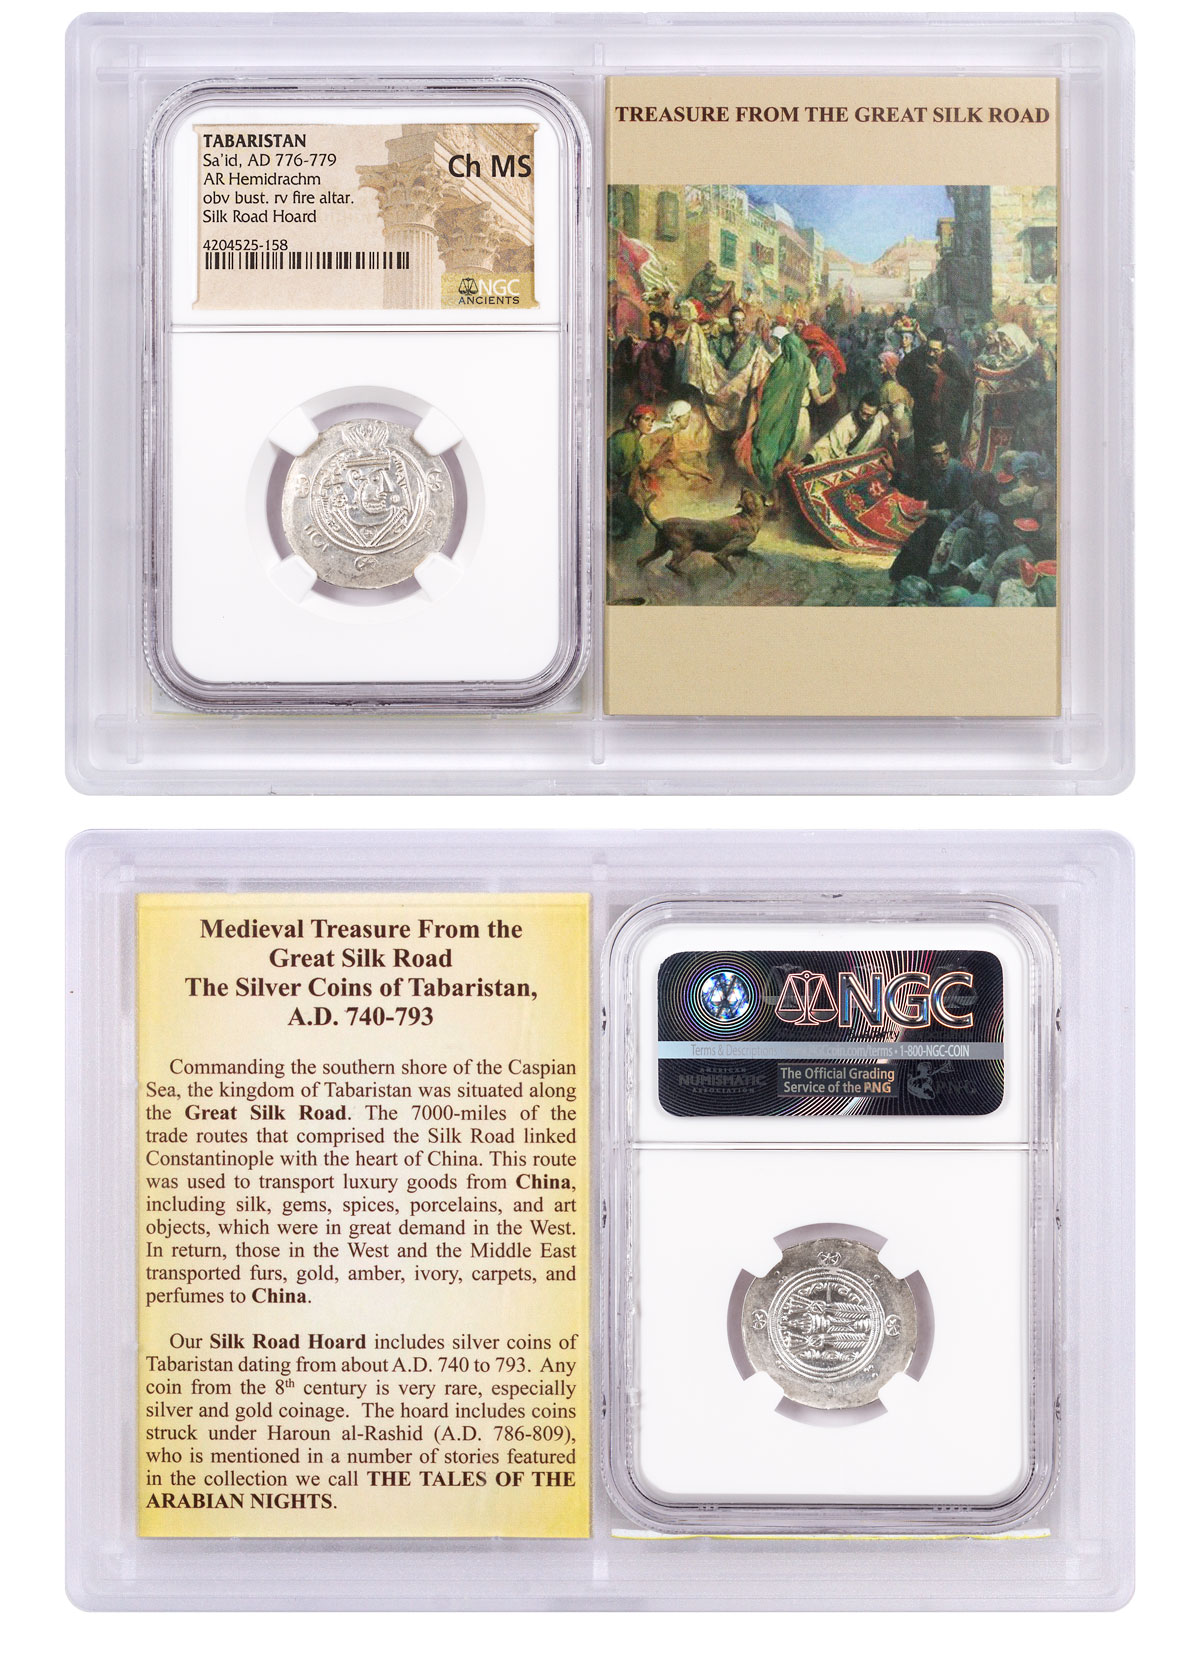 Tabaristan, Silver Hemidrachm of Sa'id (AD 776-779) - obv. Bust/rv. Fire Altar - Silk Road Hoard NGC Ch. MS (Story Vault)